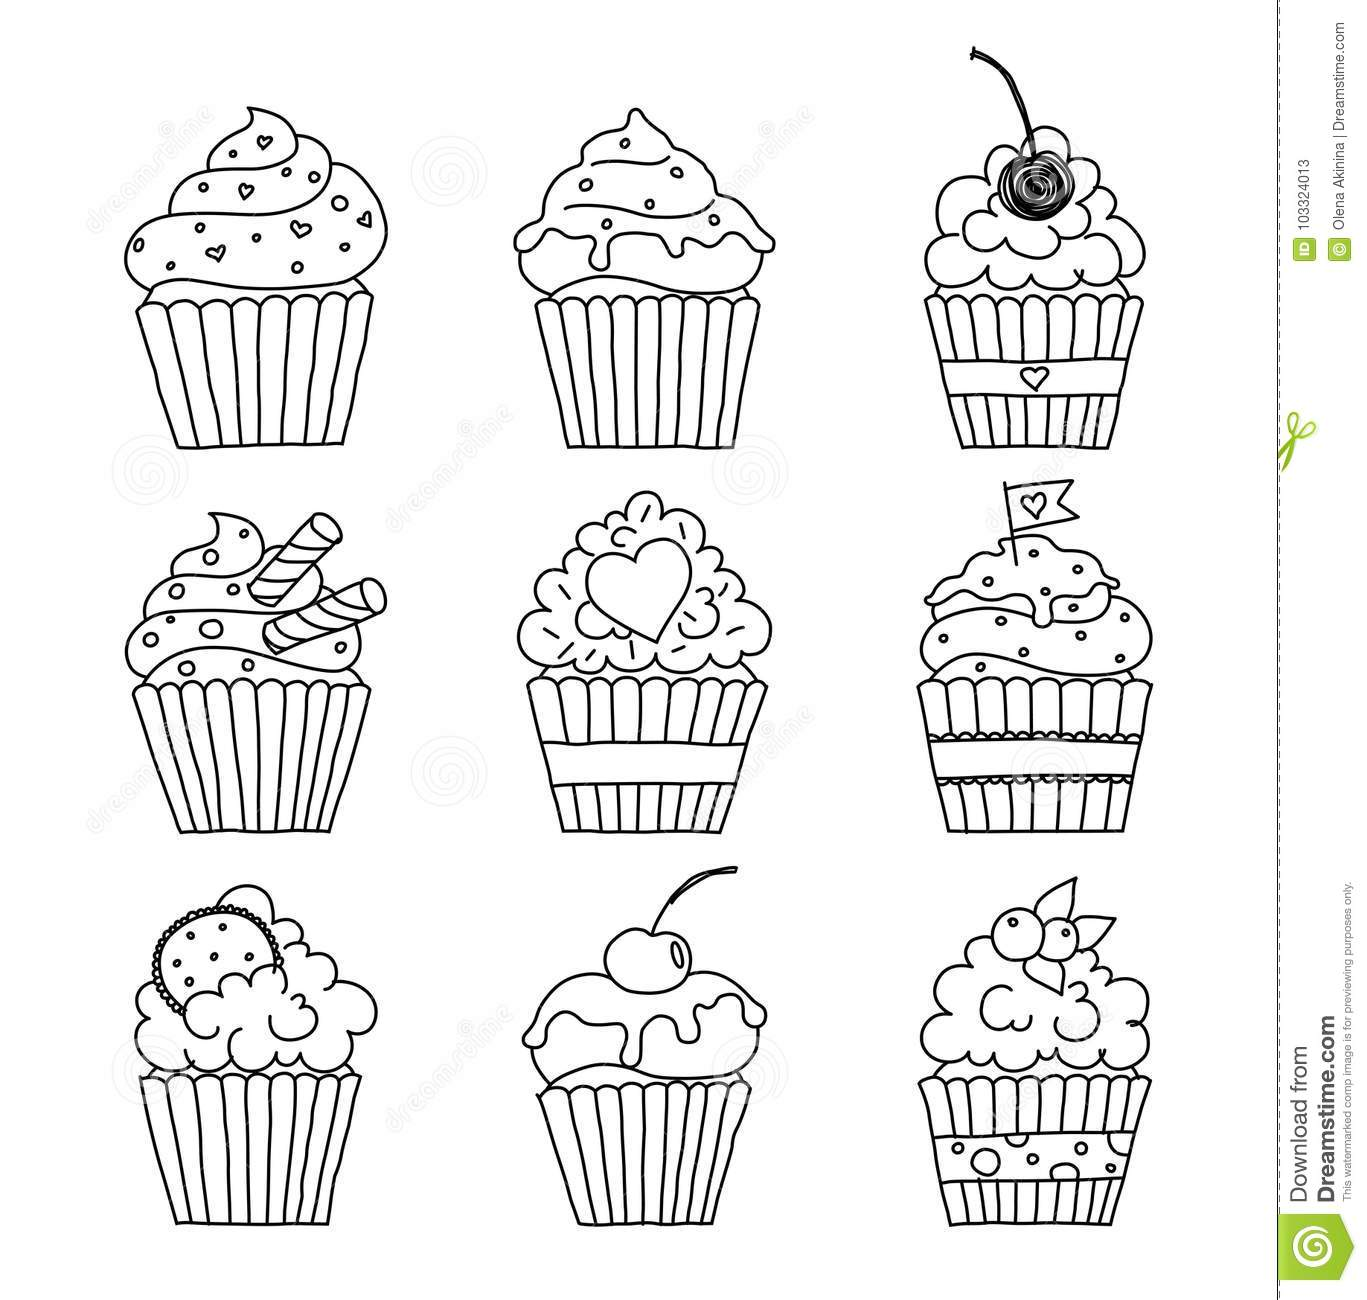 Cupcakes Outline Set Stock Vector Illustration Of Outline